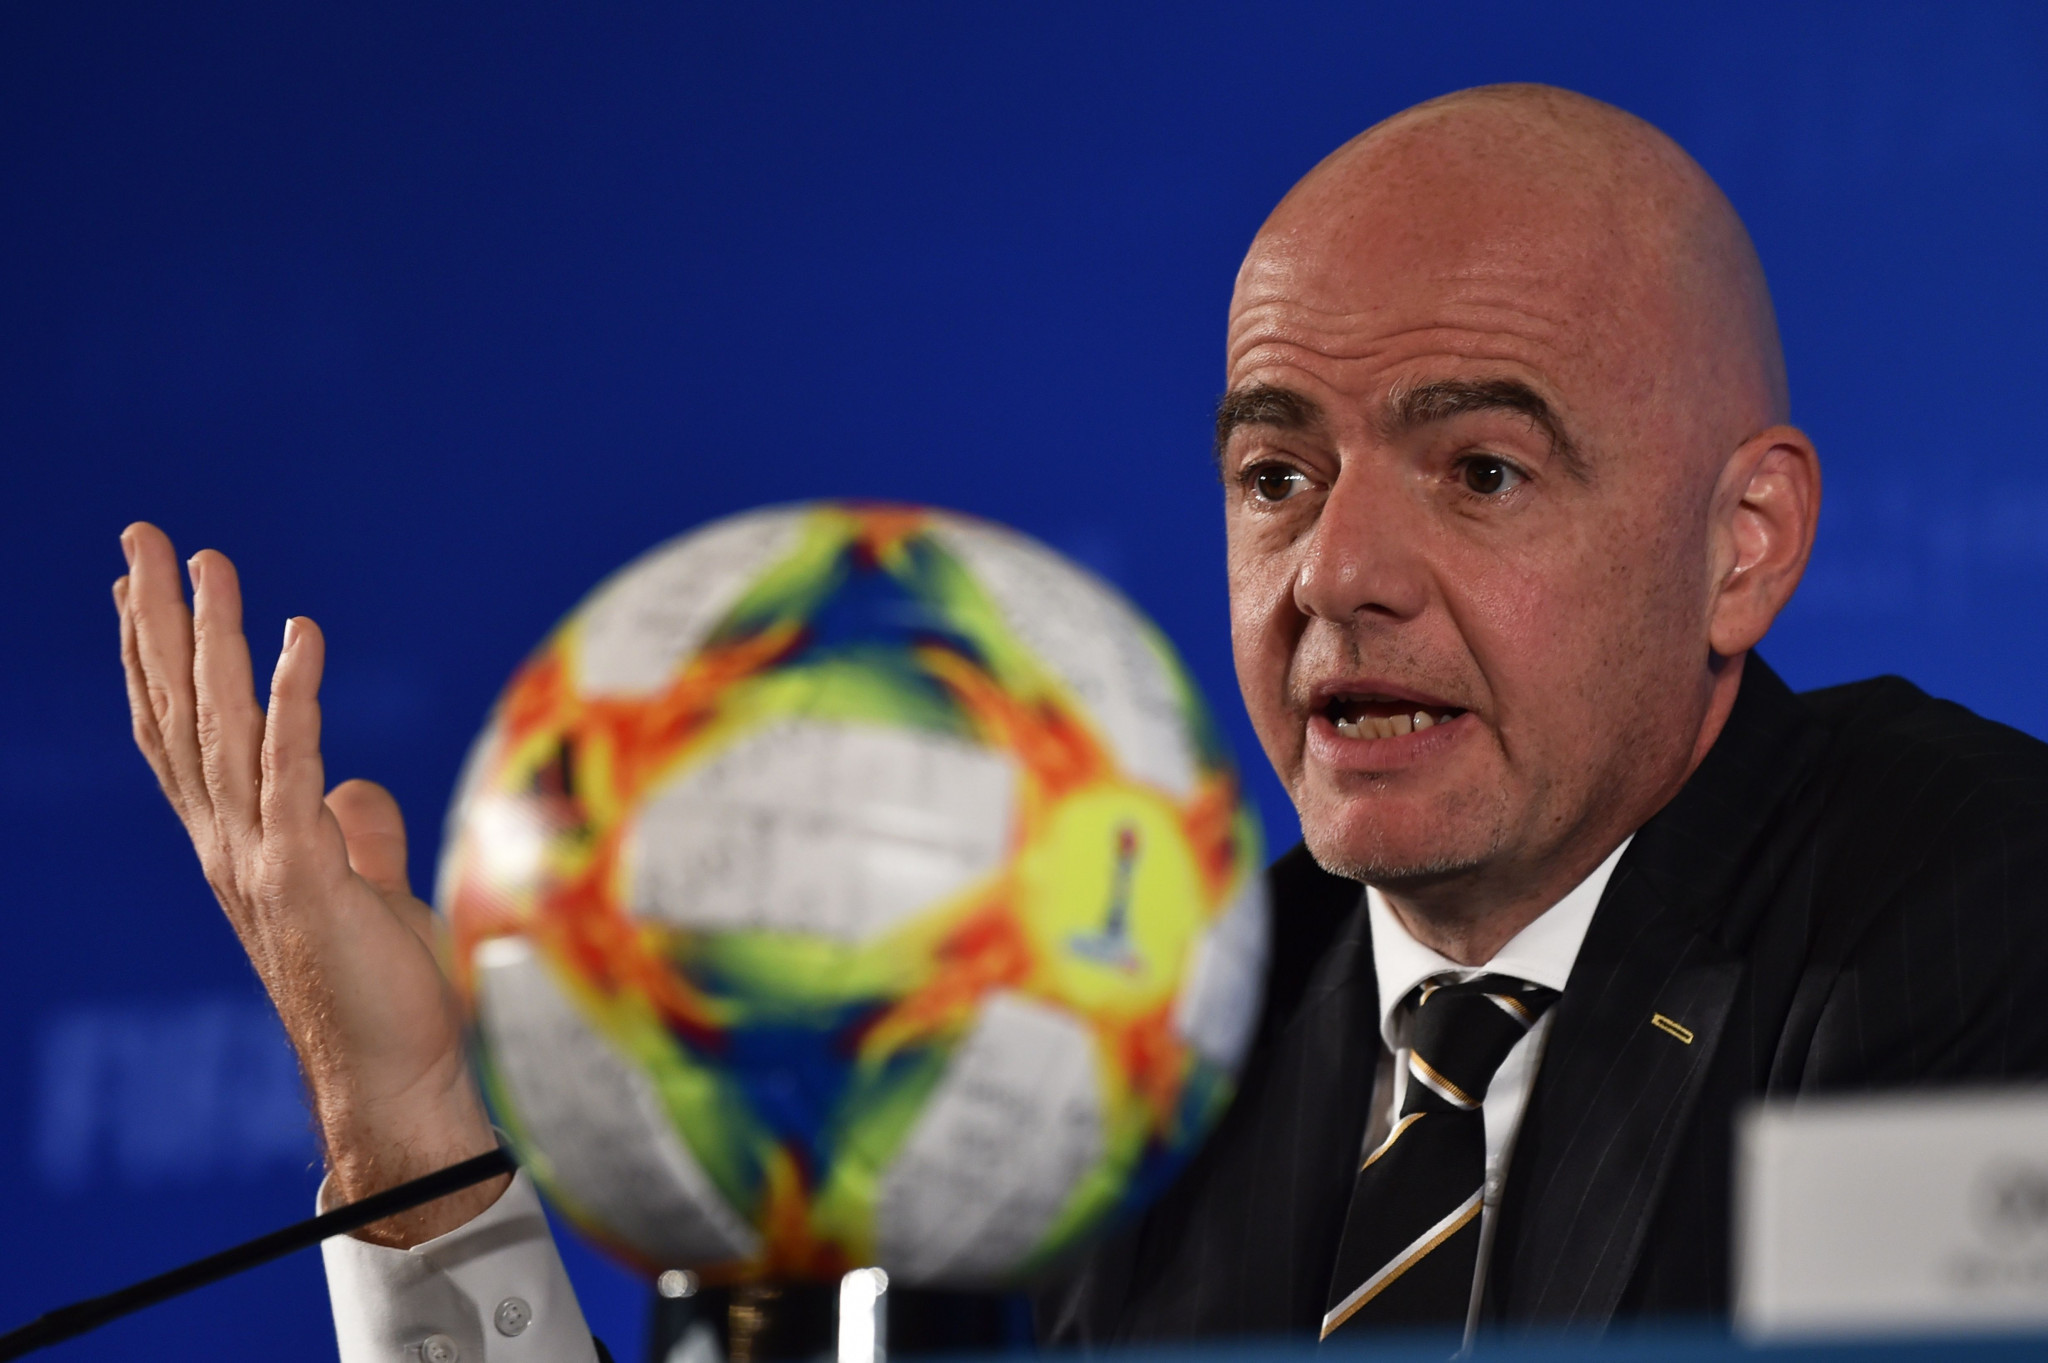 FIFA President Gianni Infantino confirmed China had been unanimously awarded the 2021 Club World Cup